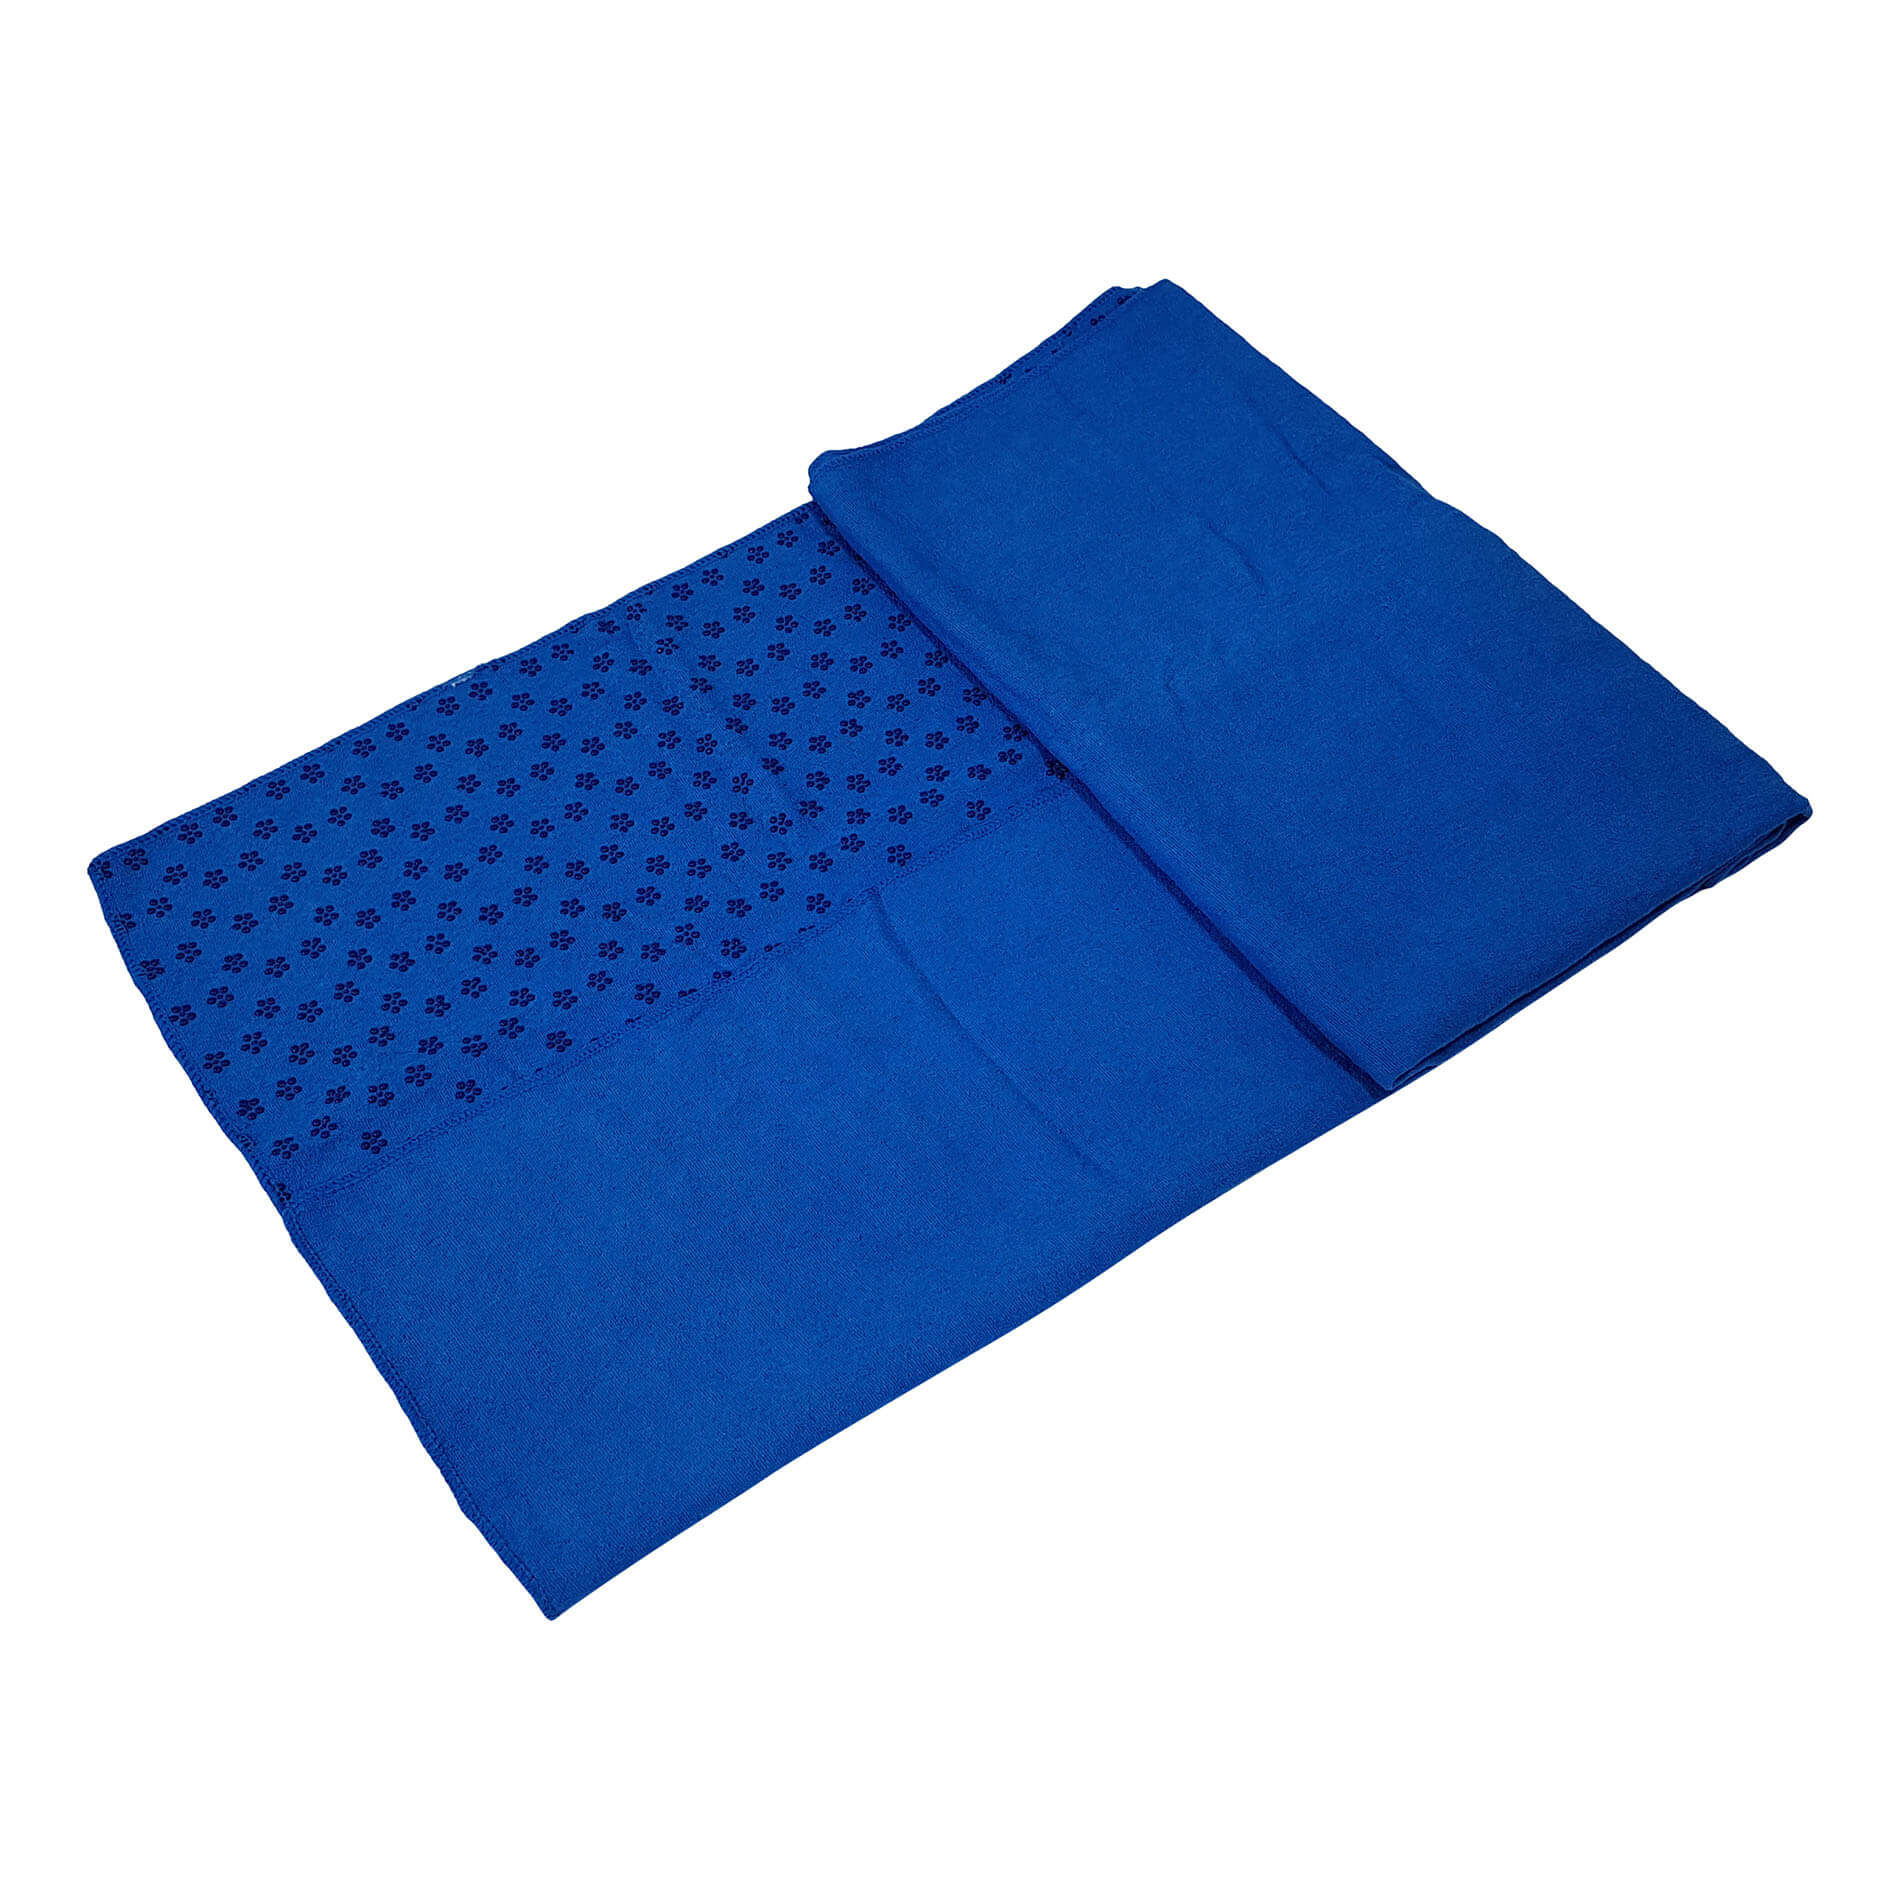 Yoga Towel 180-63 cm With Carry Bag - Blue